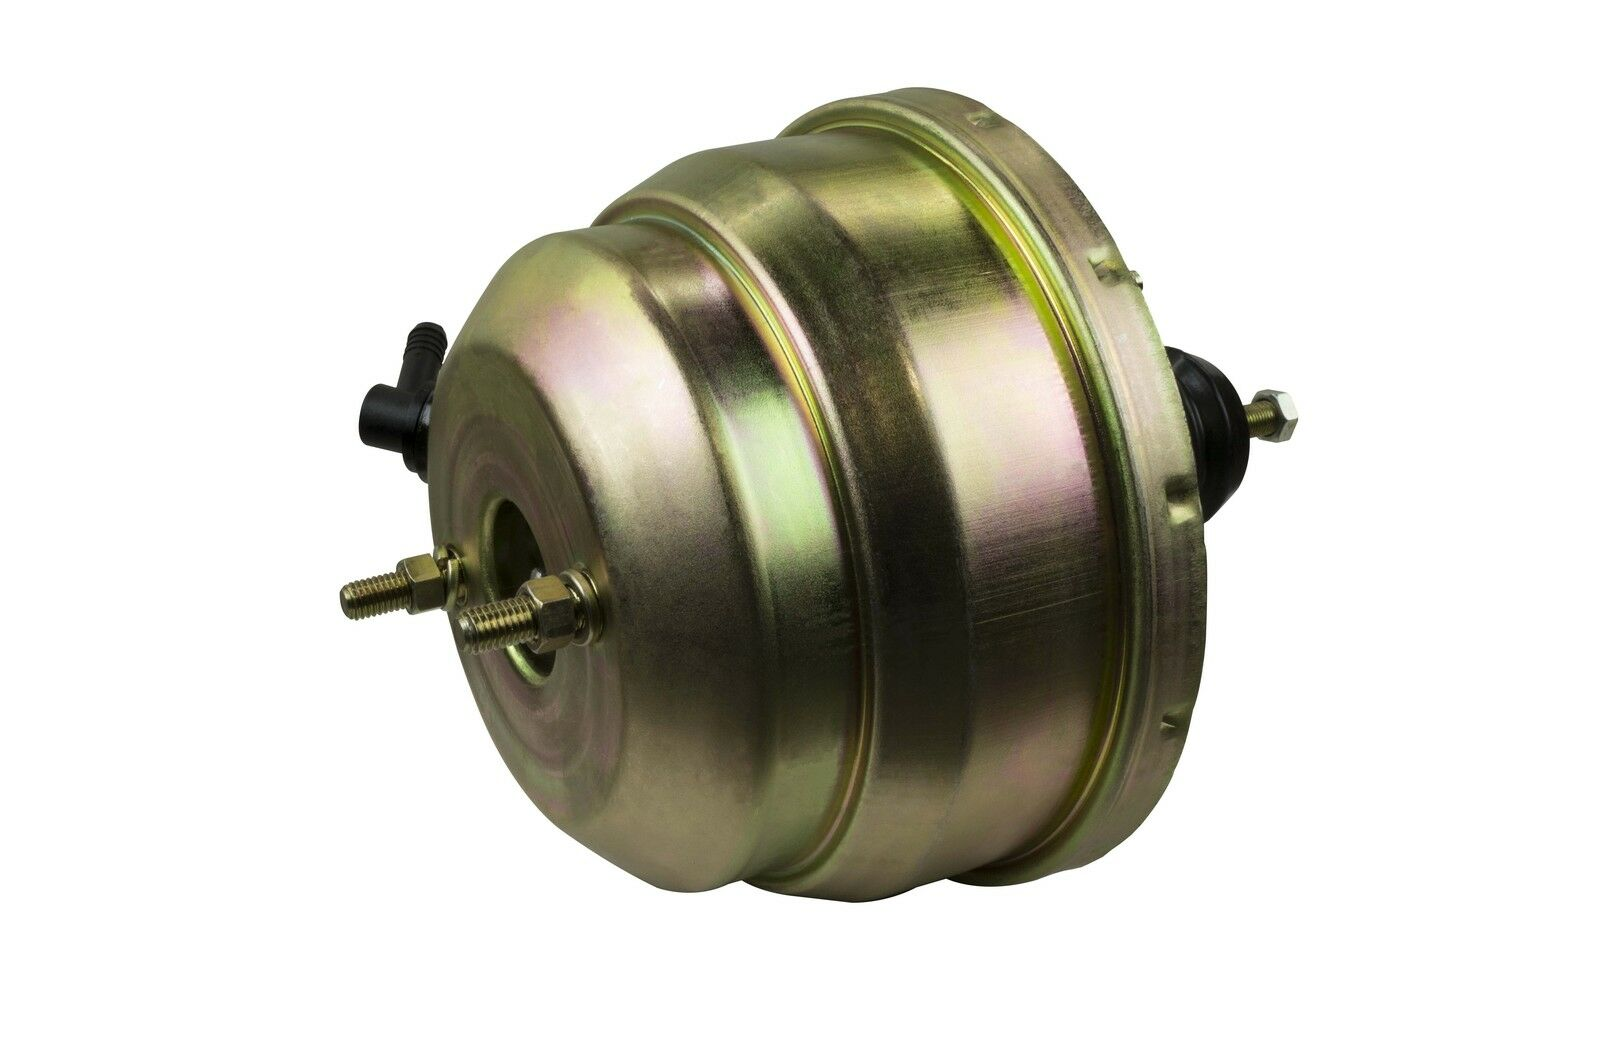 Ford Truck Standard Power Brake Booster Assembly, F100 ...